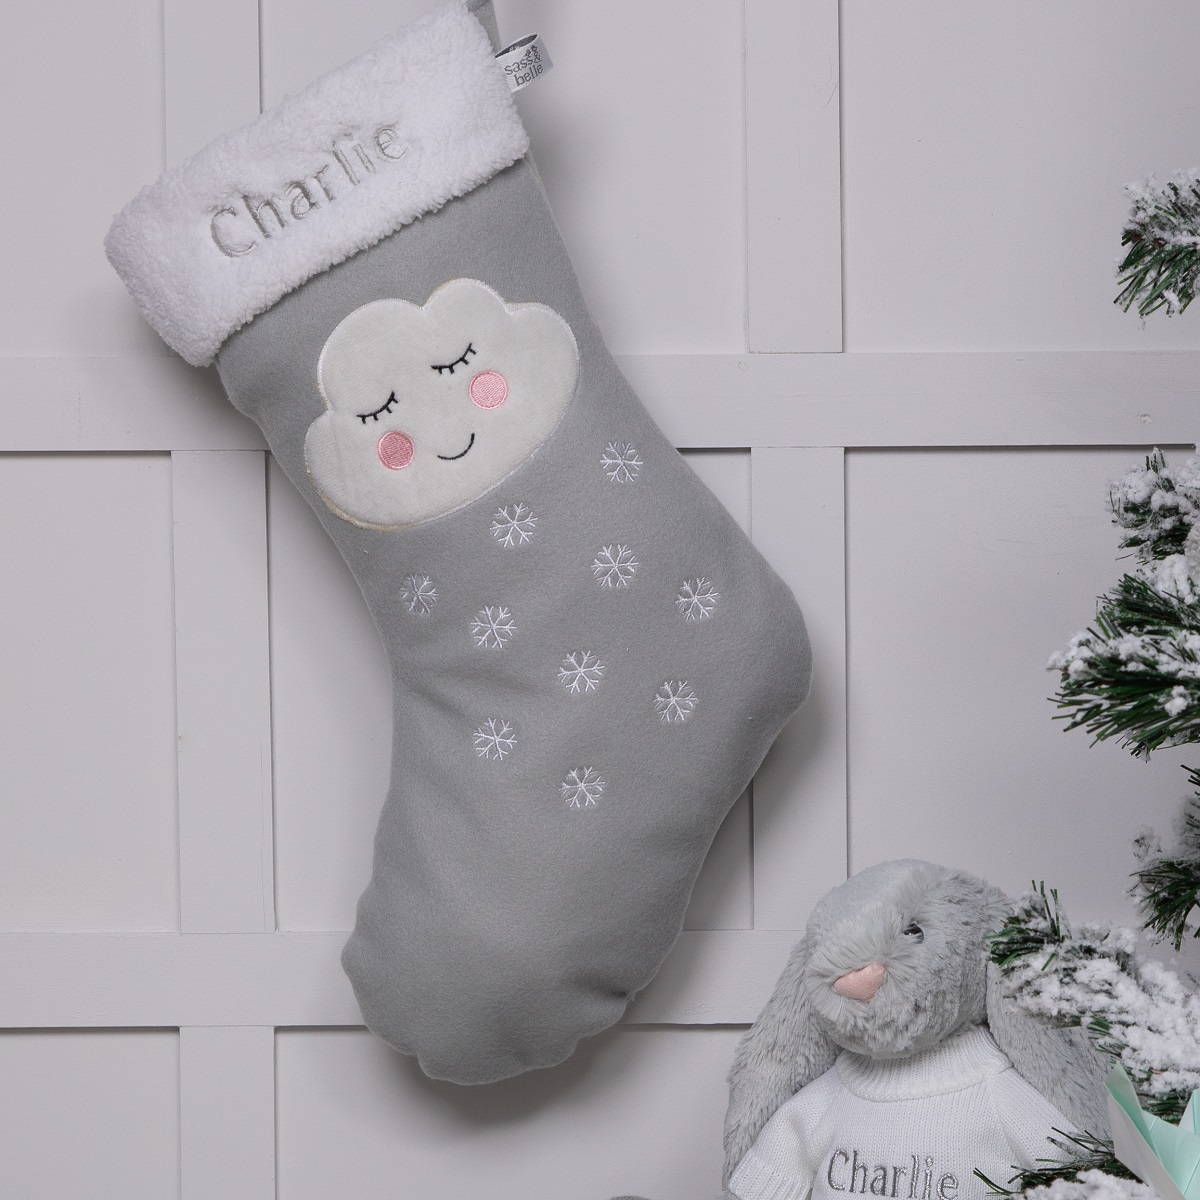 Personalised Christmas stocking by That's mine